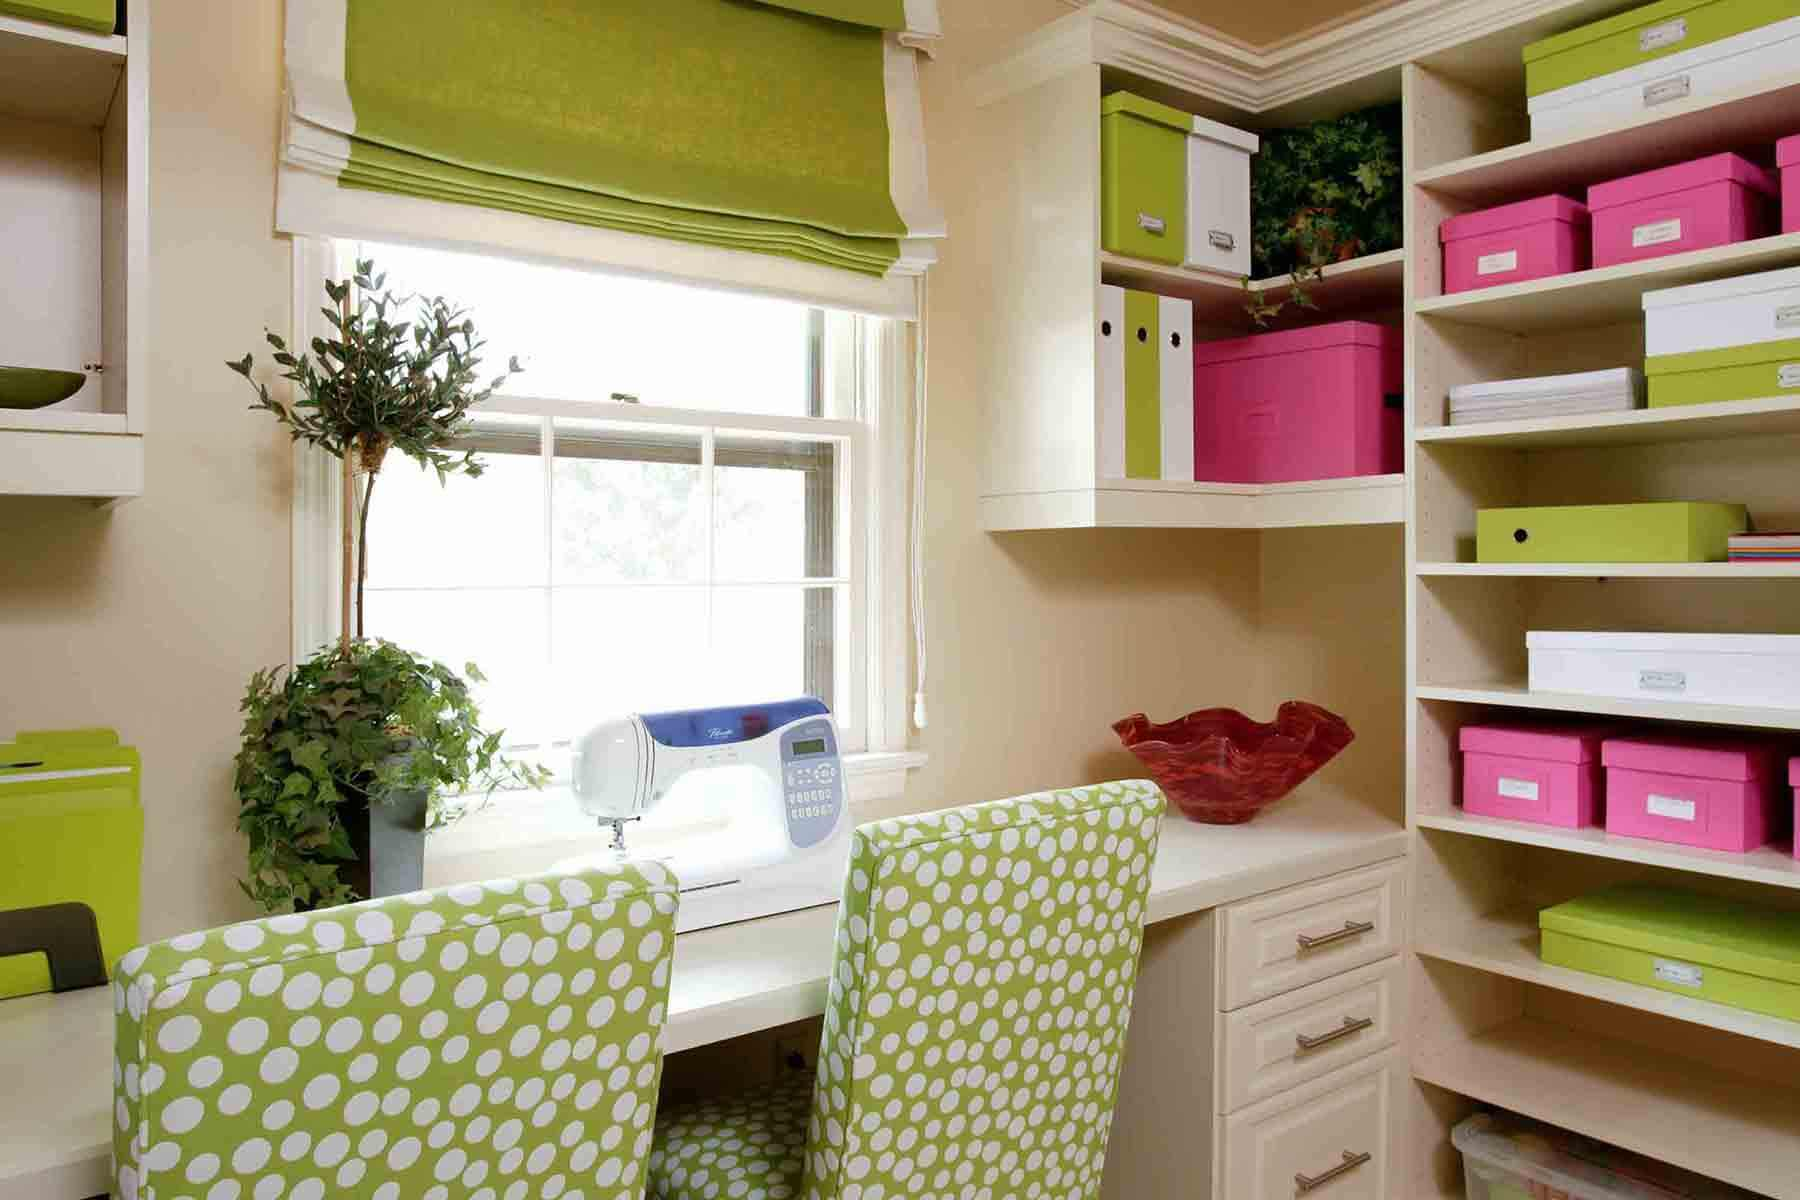 ideas for craft room chairs chair covers office seats 23 design creative rooms green pink and white sewing with custom built in storage from floor